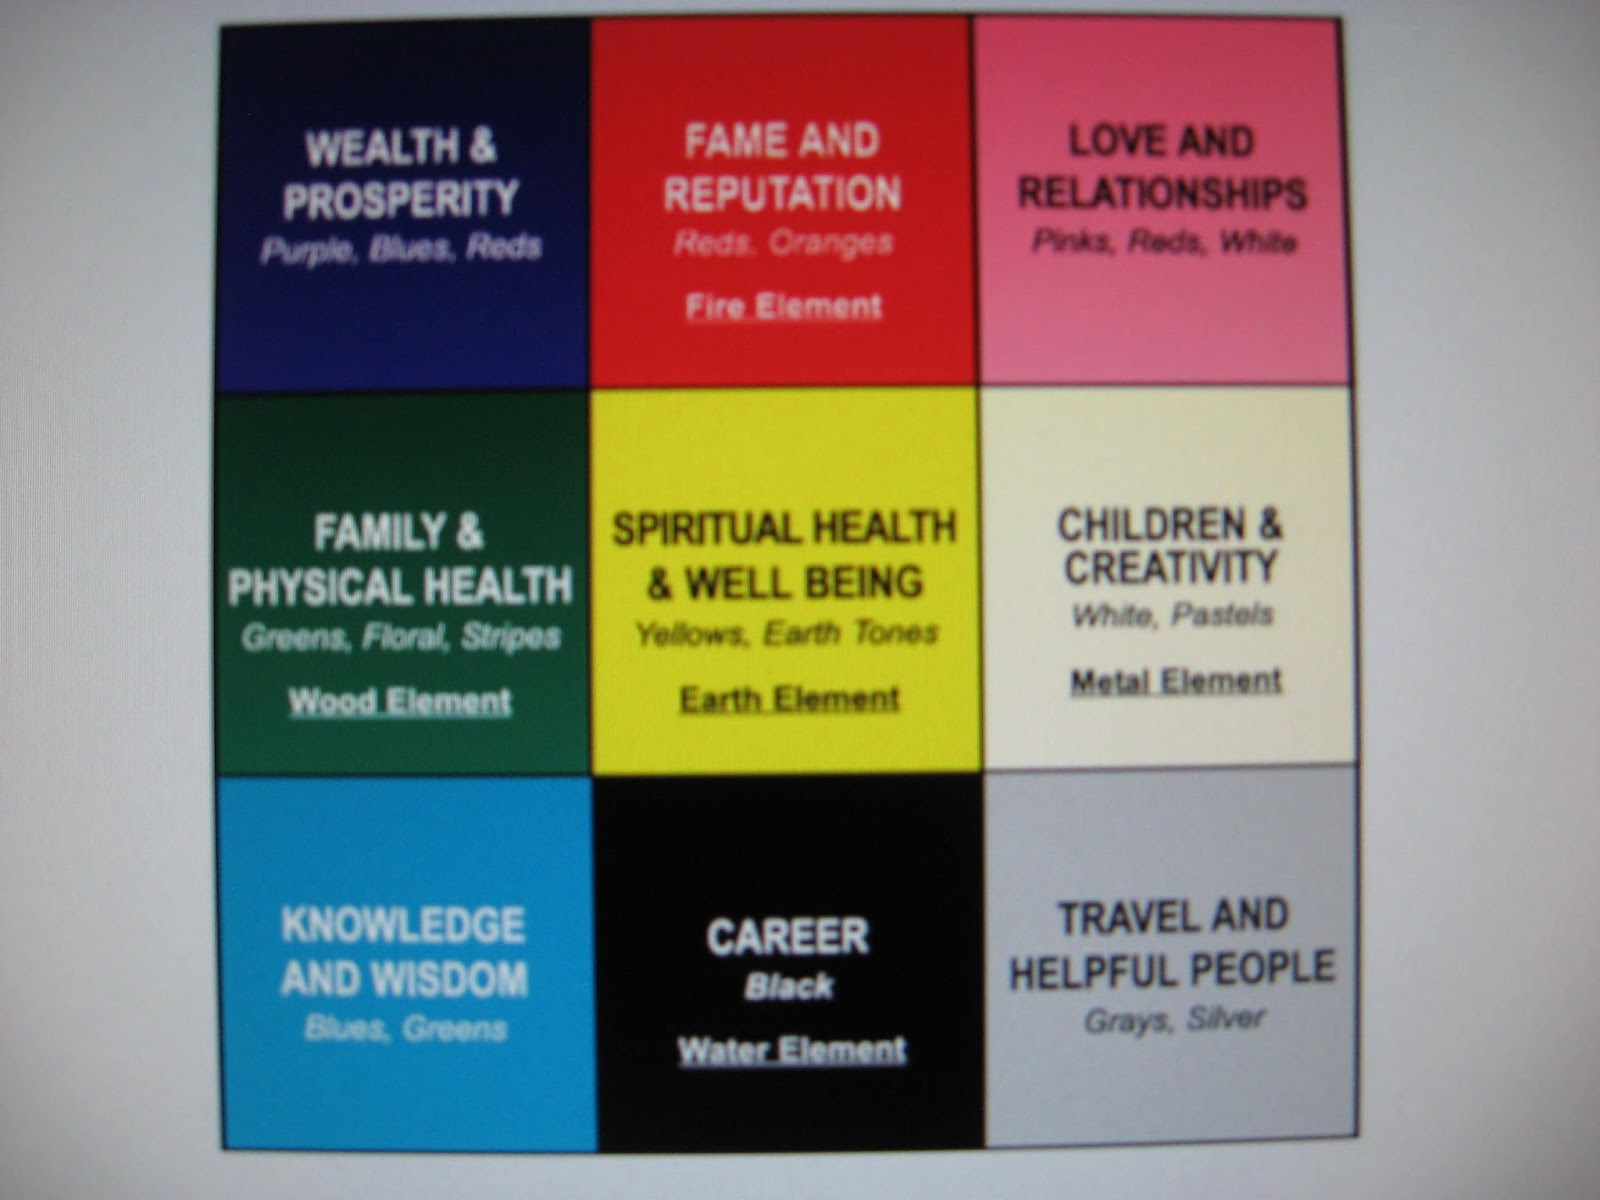 Feng shui by maria quiet feng shui knowledge and self for Basic feng shui principles